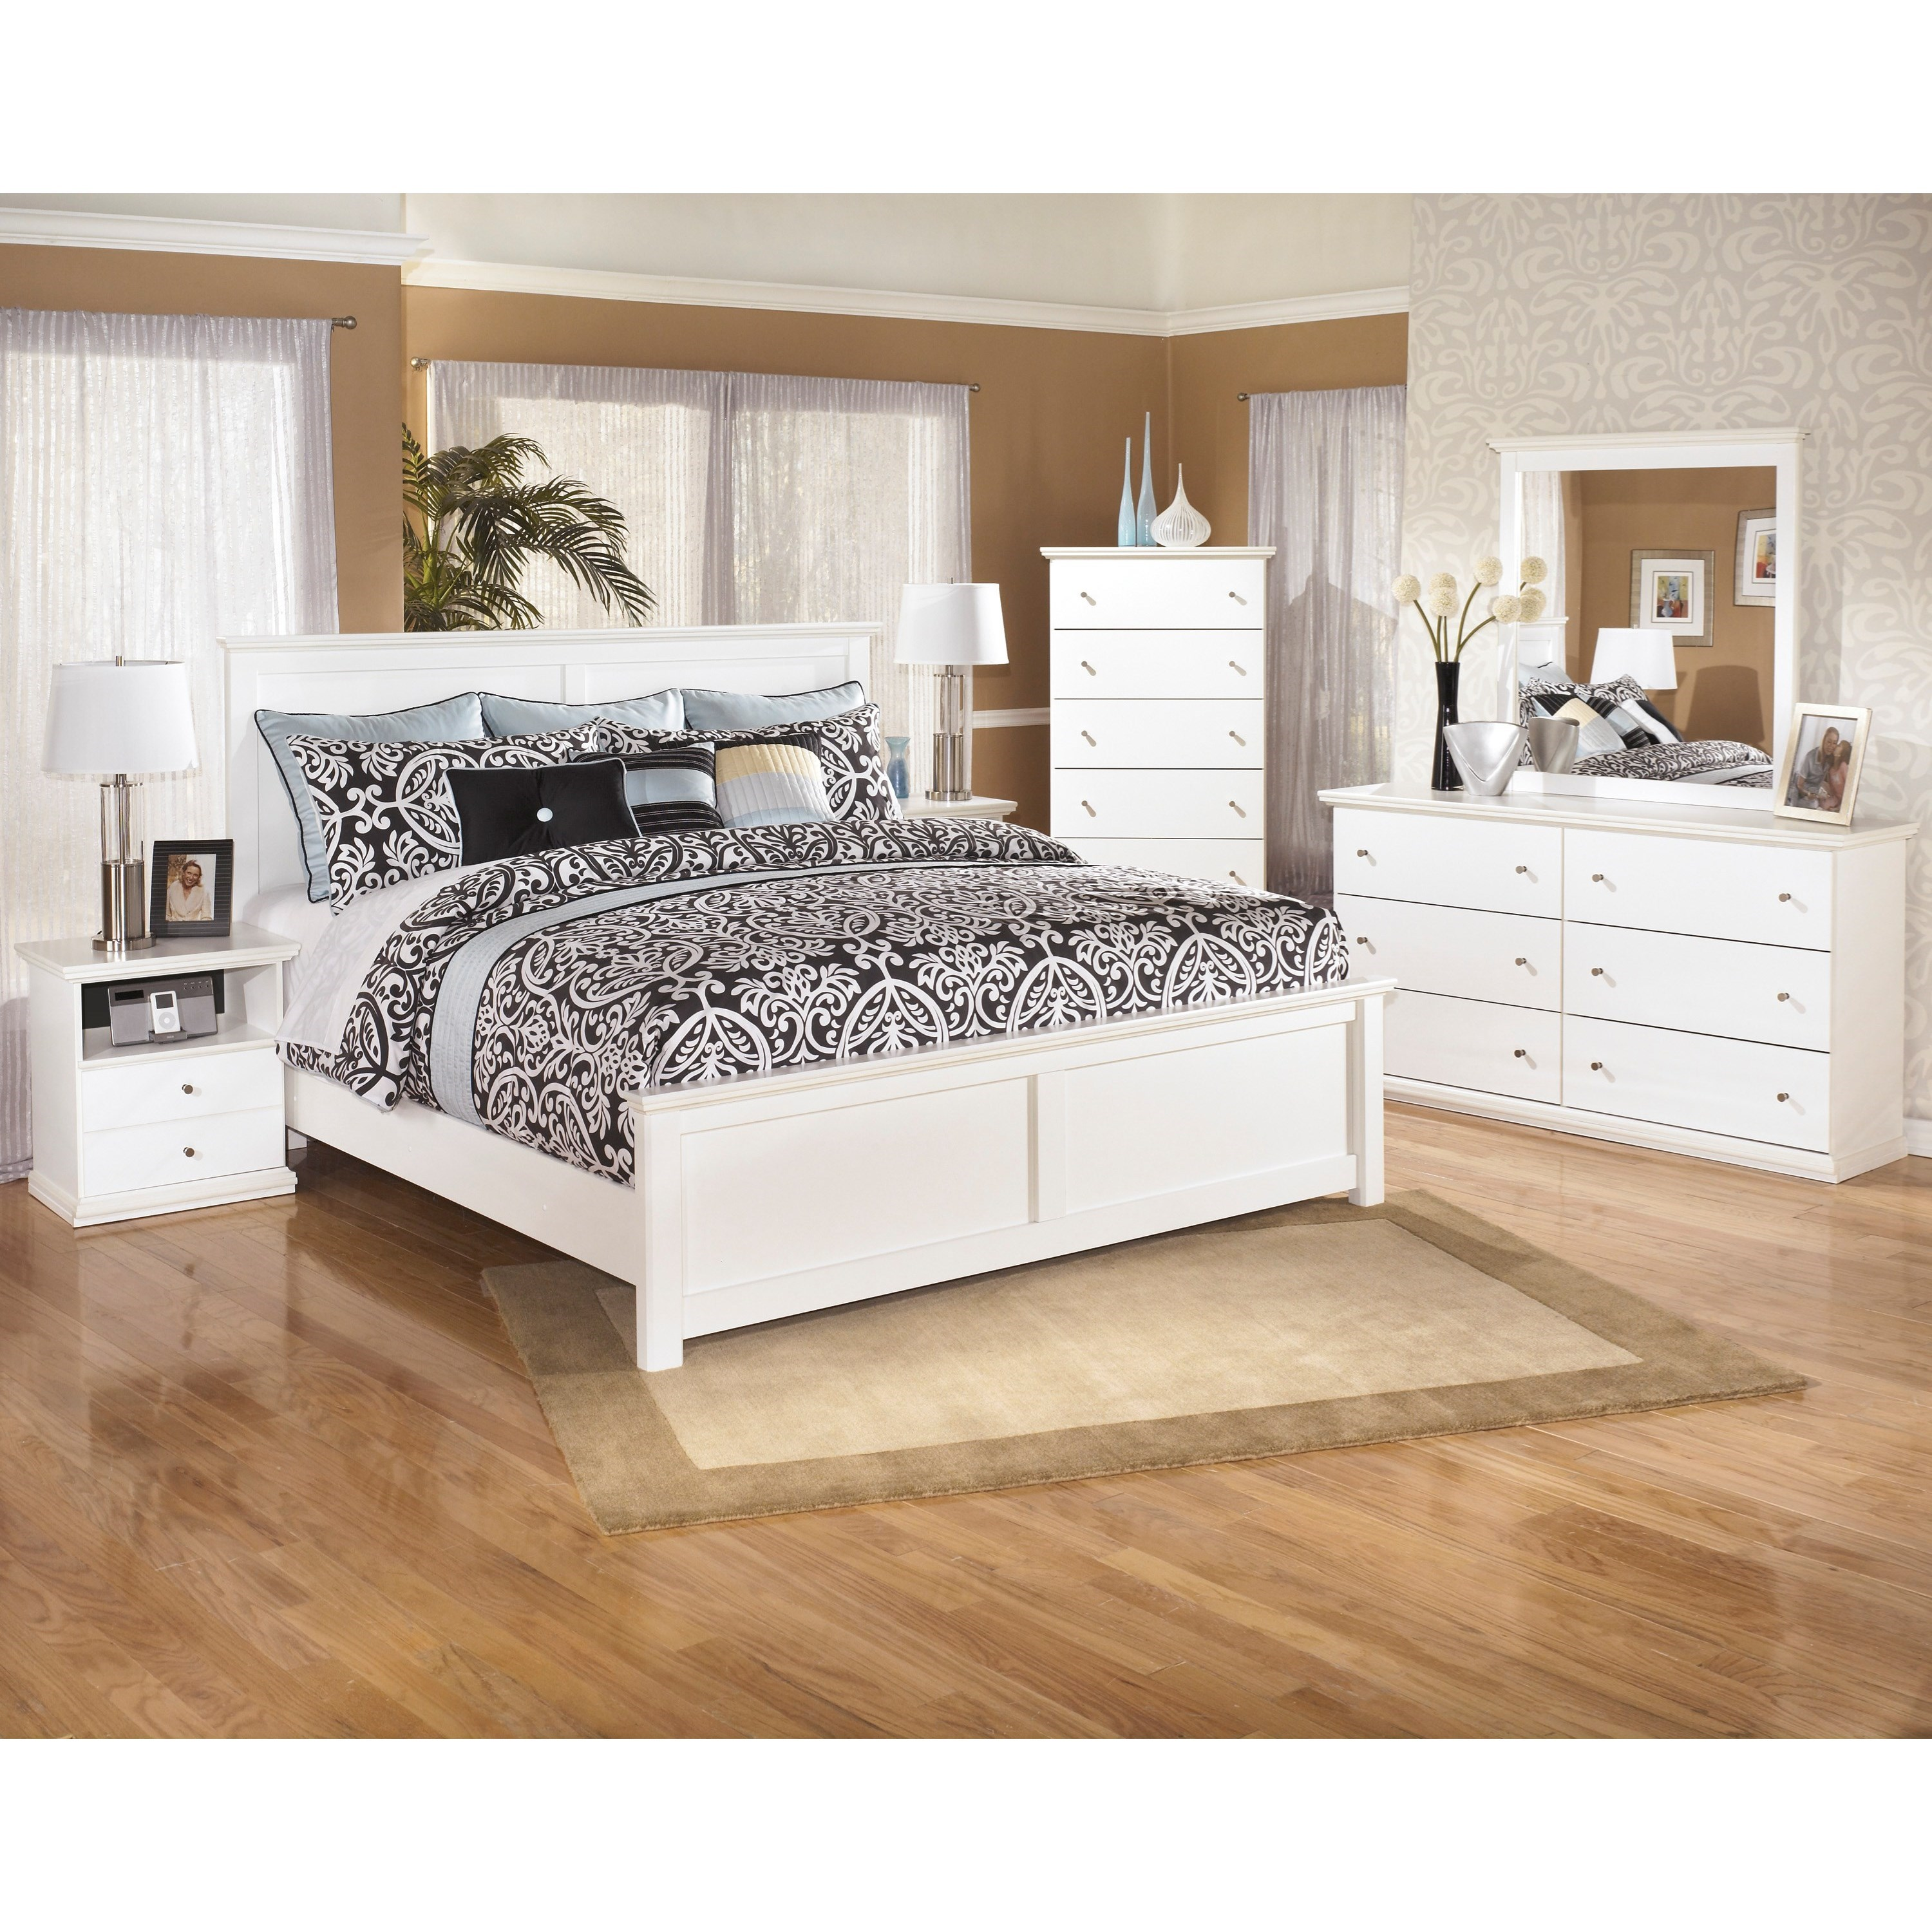 Bostwick Shoals King Bedroom Group by Signature Design by Ashley at Sparks HomeStore